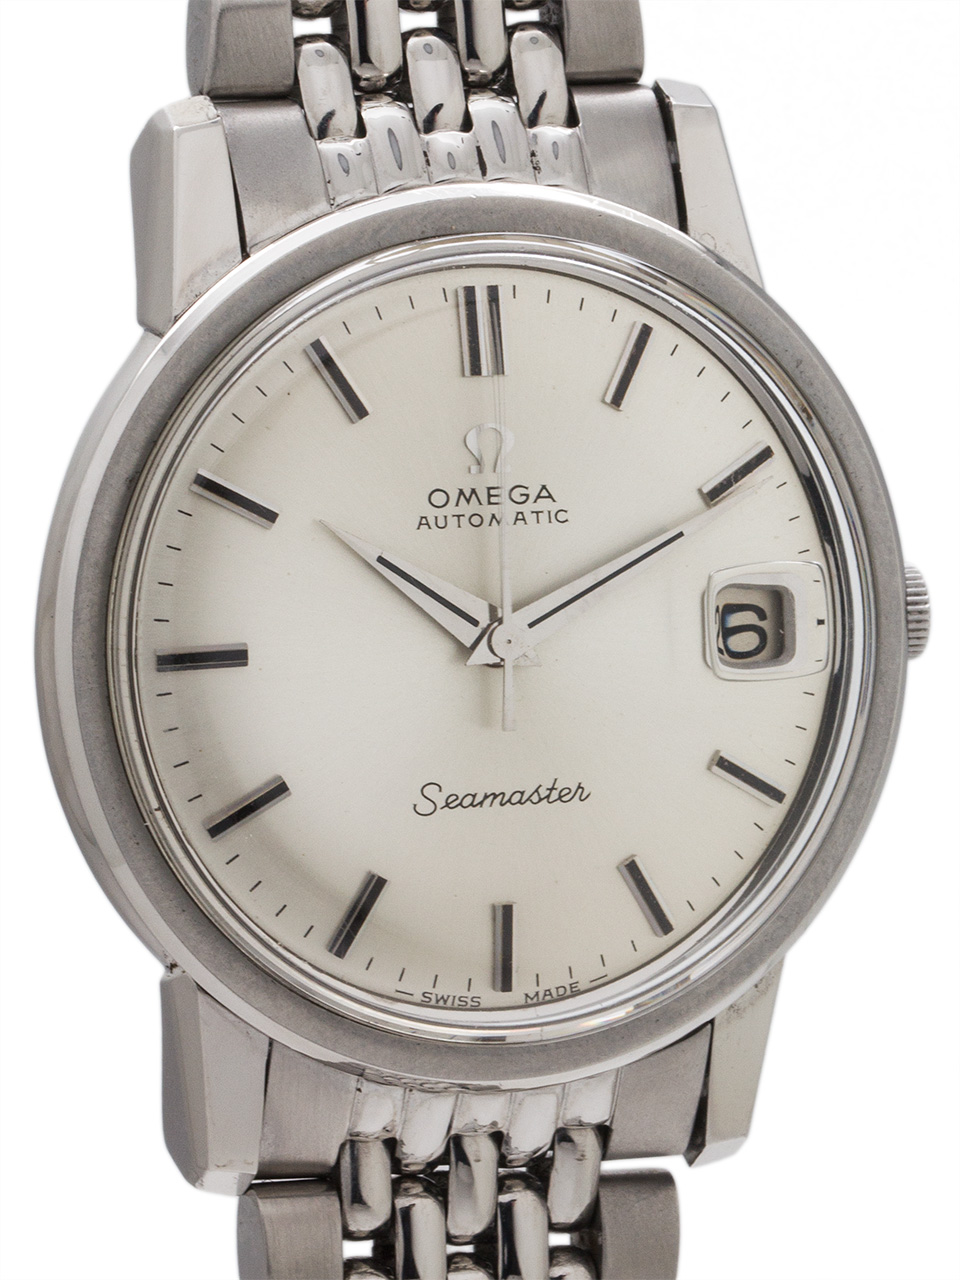 Omega Seamaster ref 166.003 circa 1967 Exceptional!